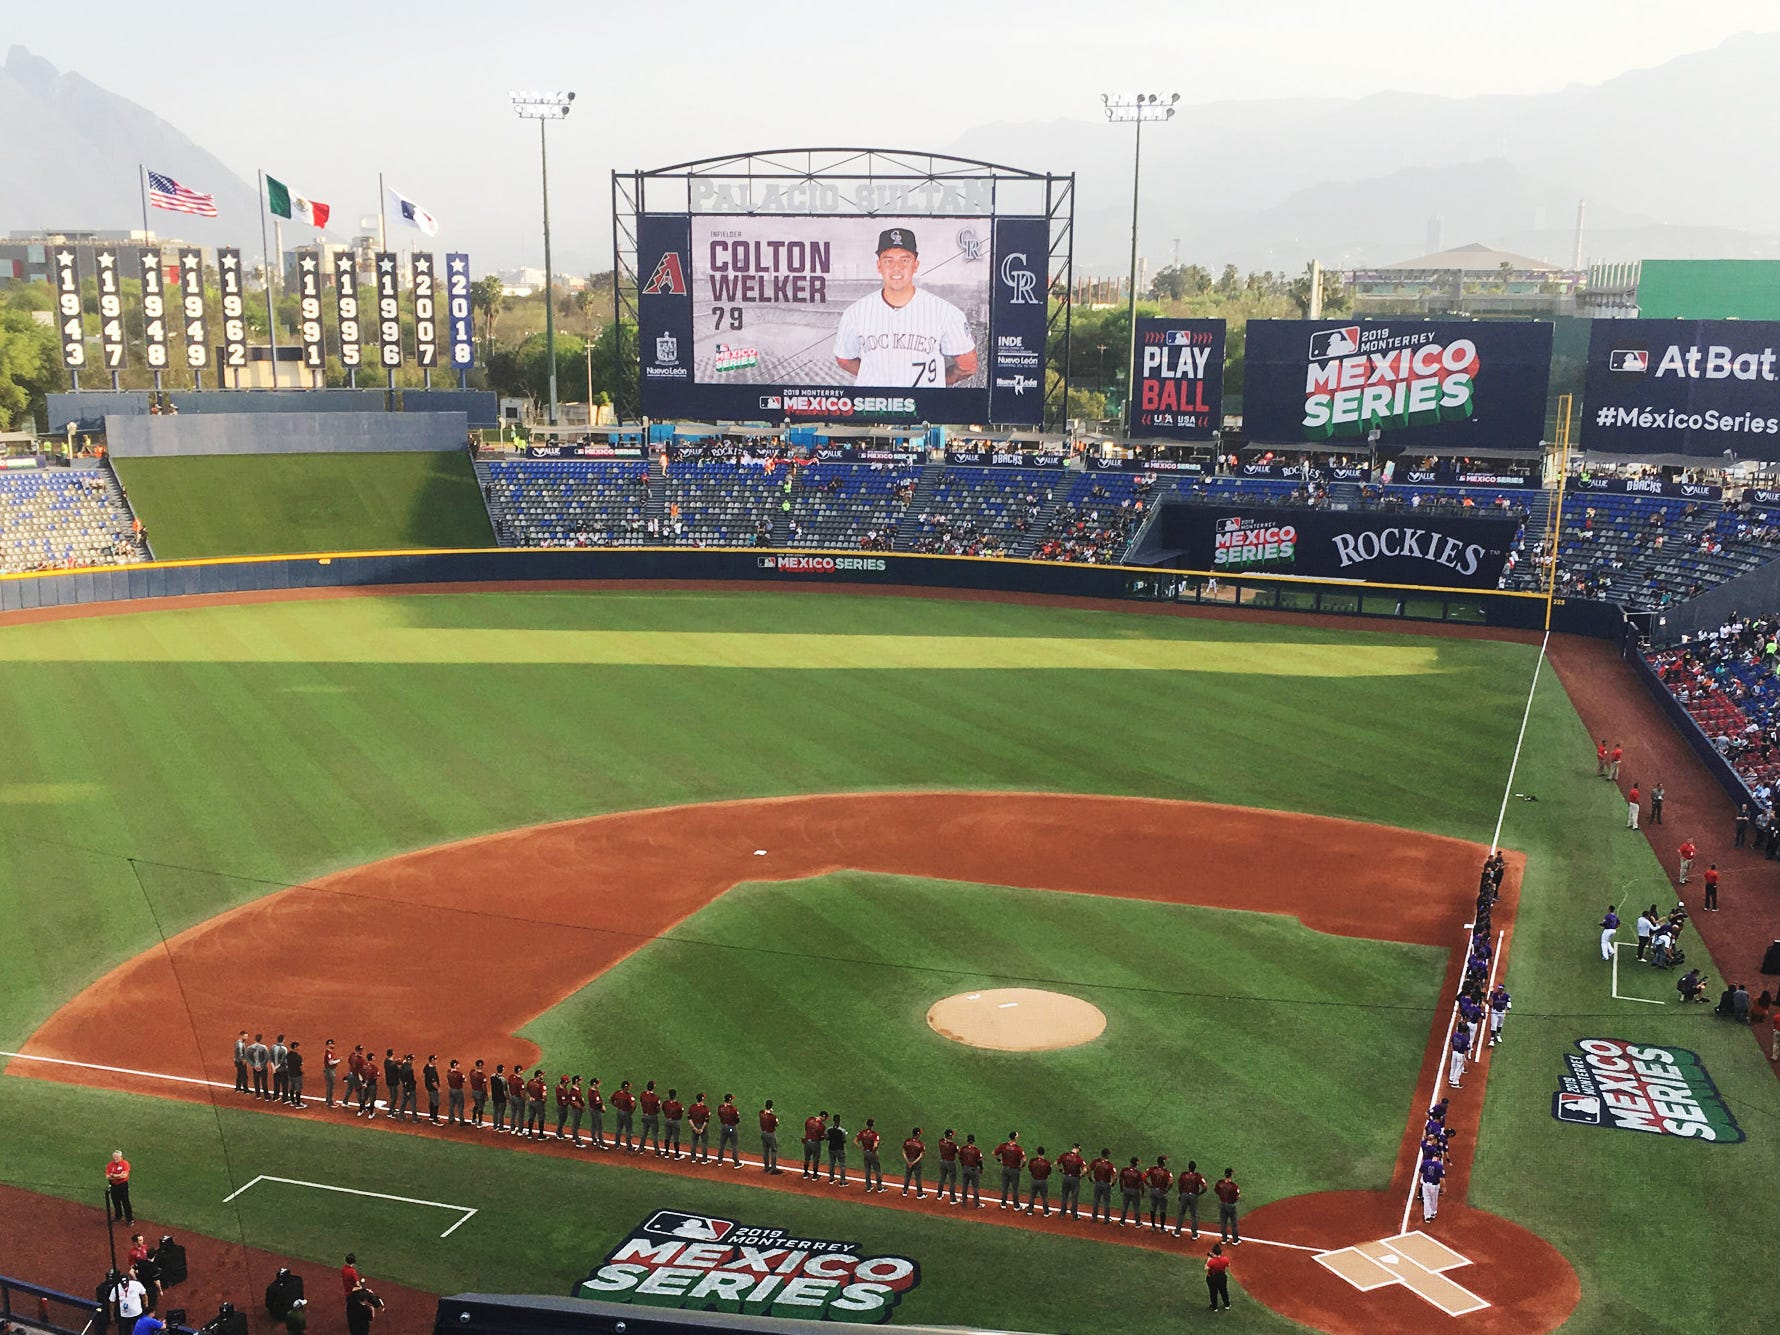 The Arizona Diamondbacks and the Colorado Rockies lined up before playing one of two spring training games in Monterrey, Mexico.